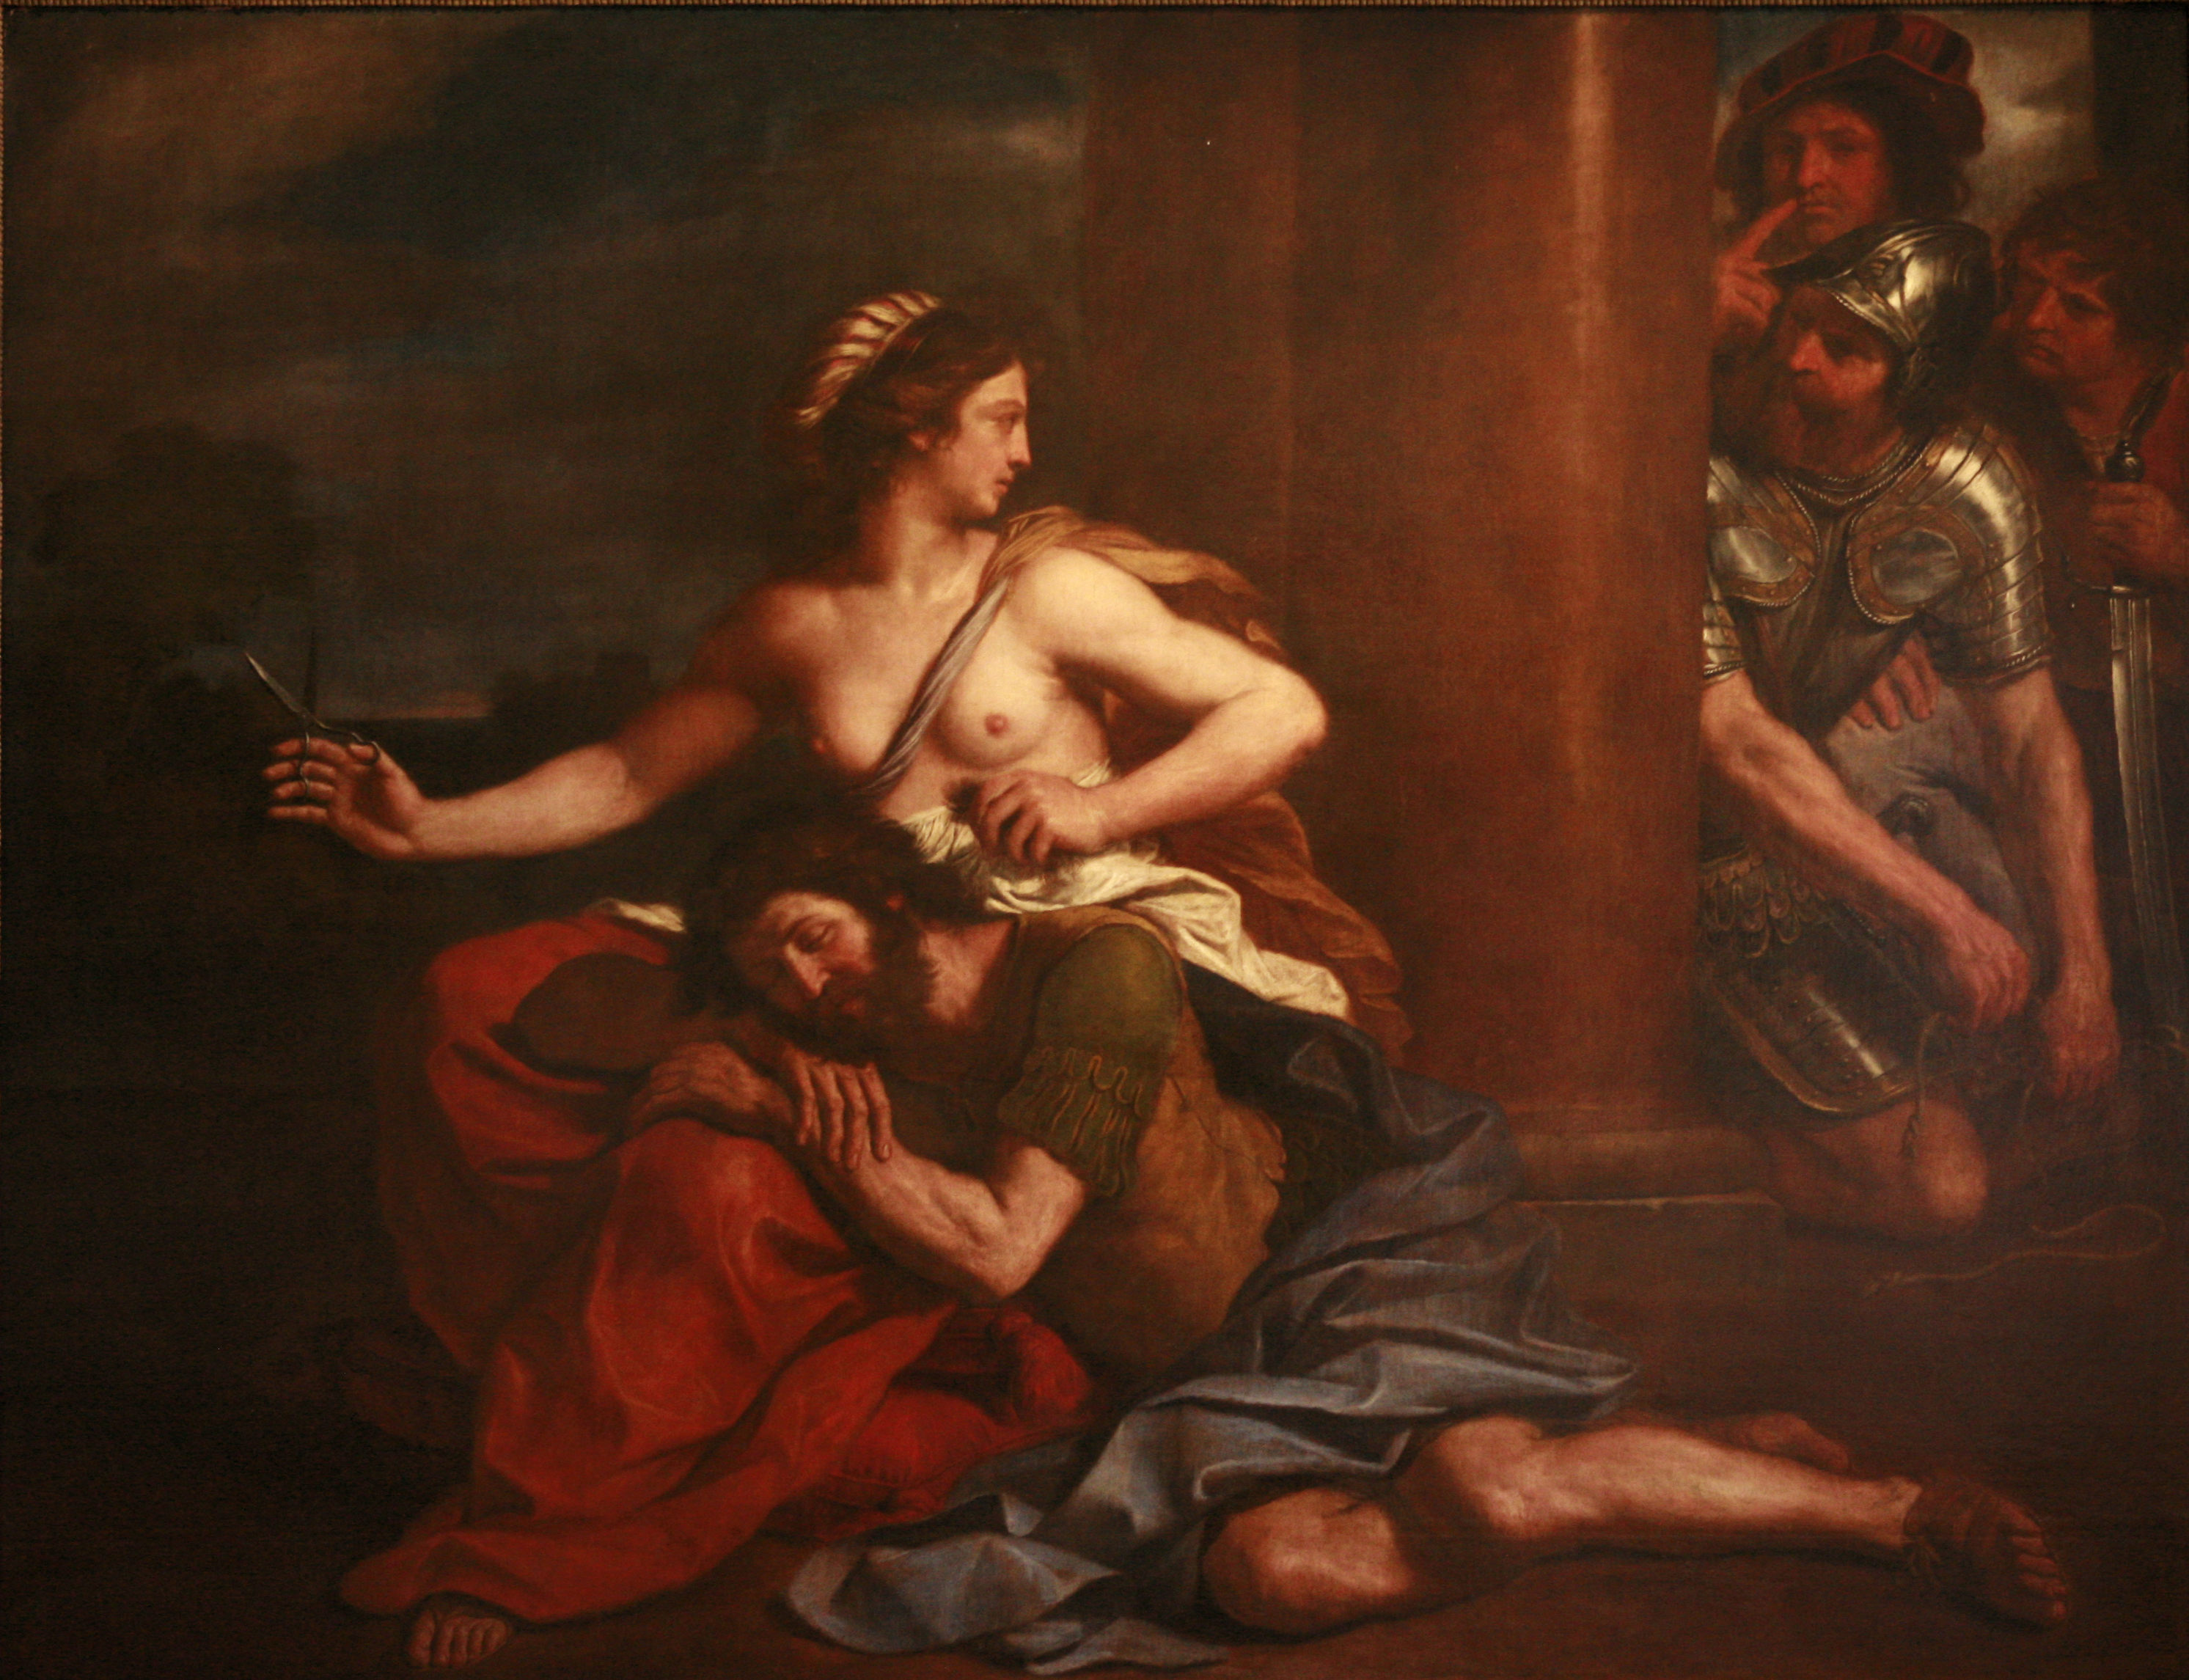 Samson And Delilah By Minanicole